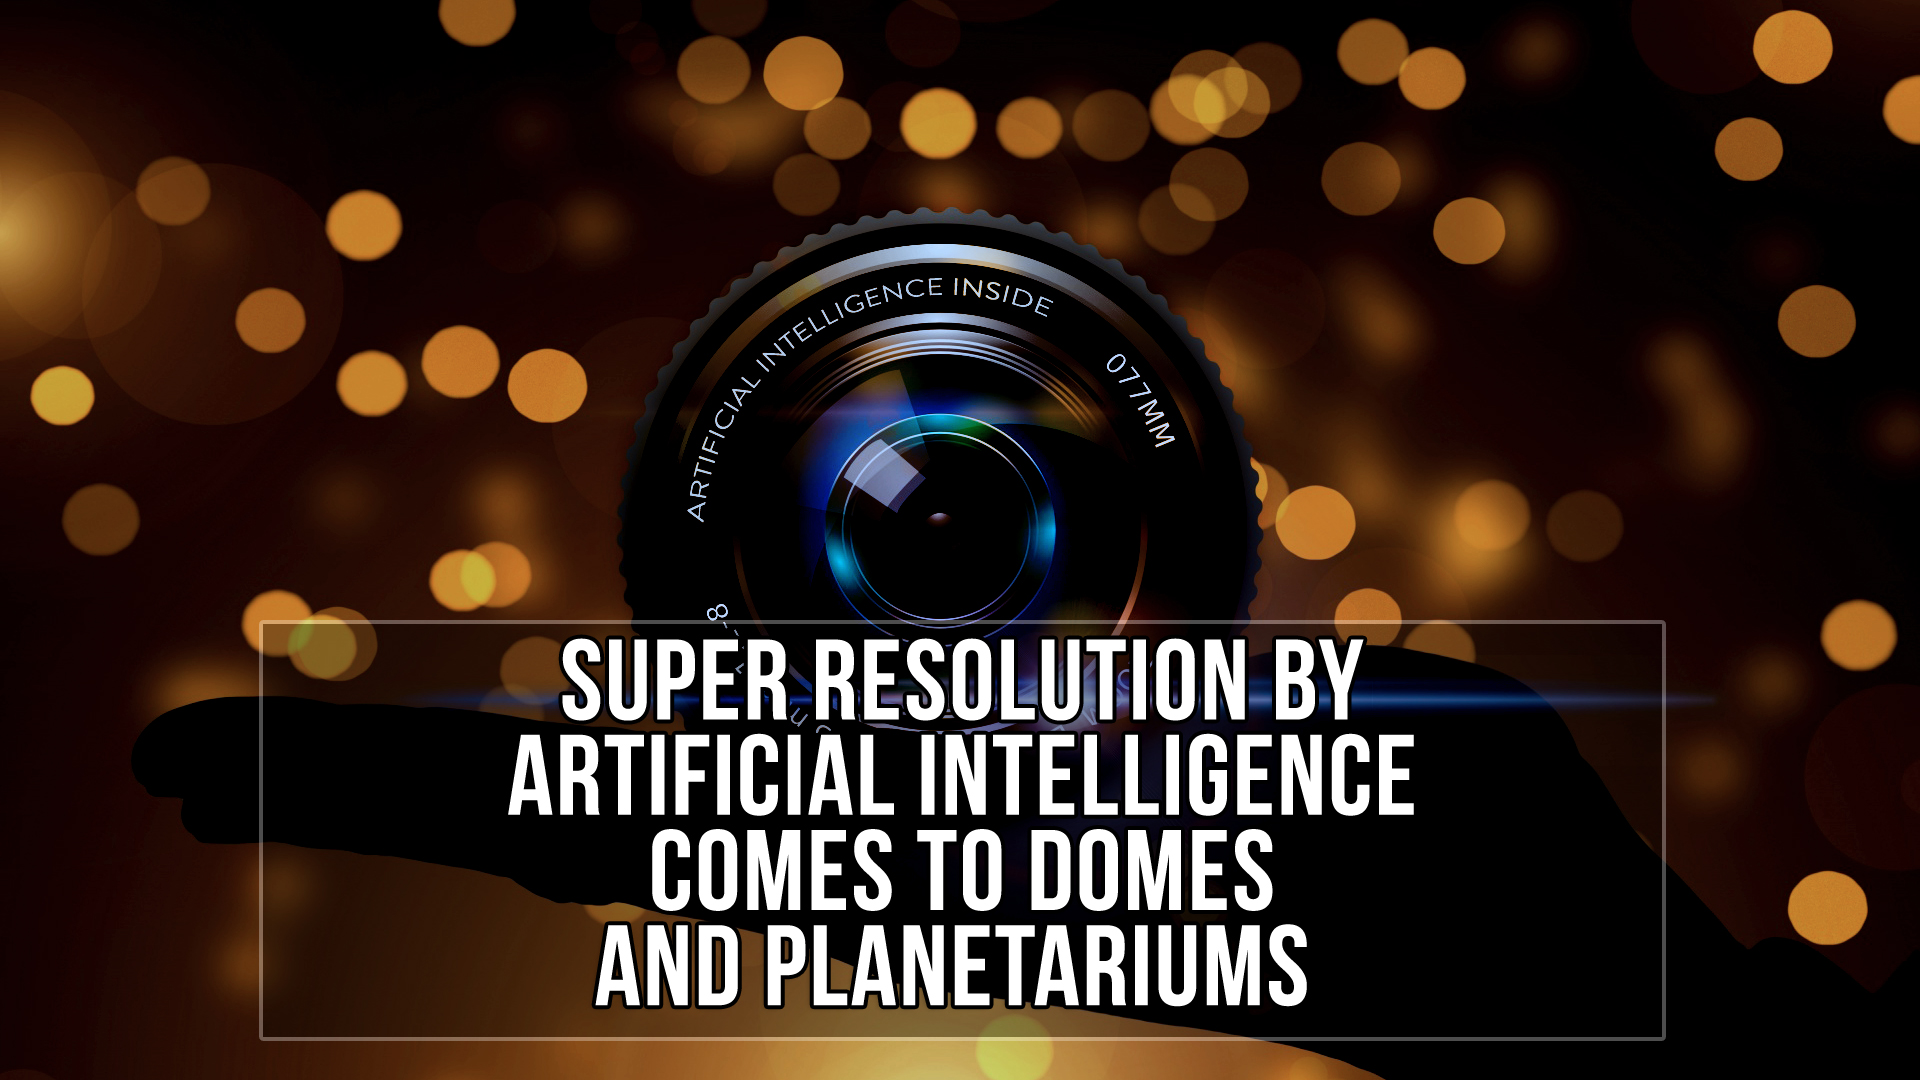 img news fulldome super-resolution-artificial-intelligence-for-domes-planetariums